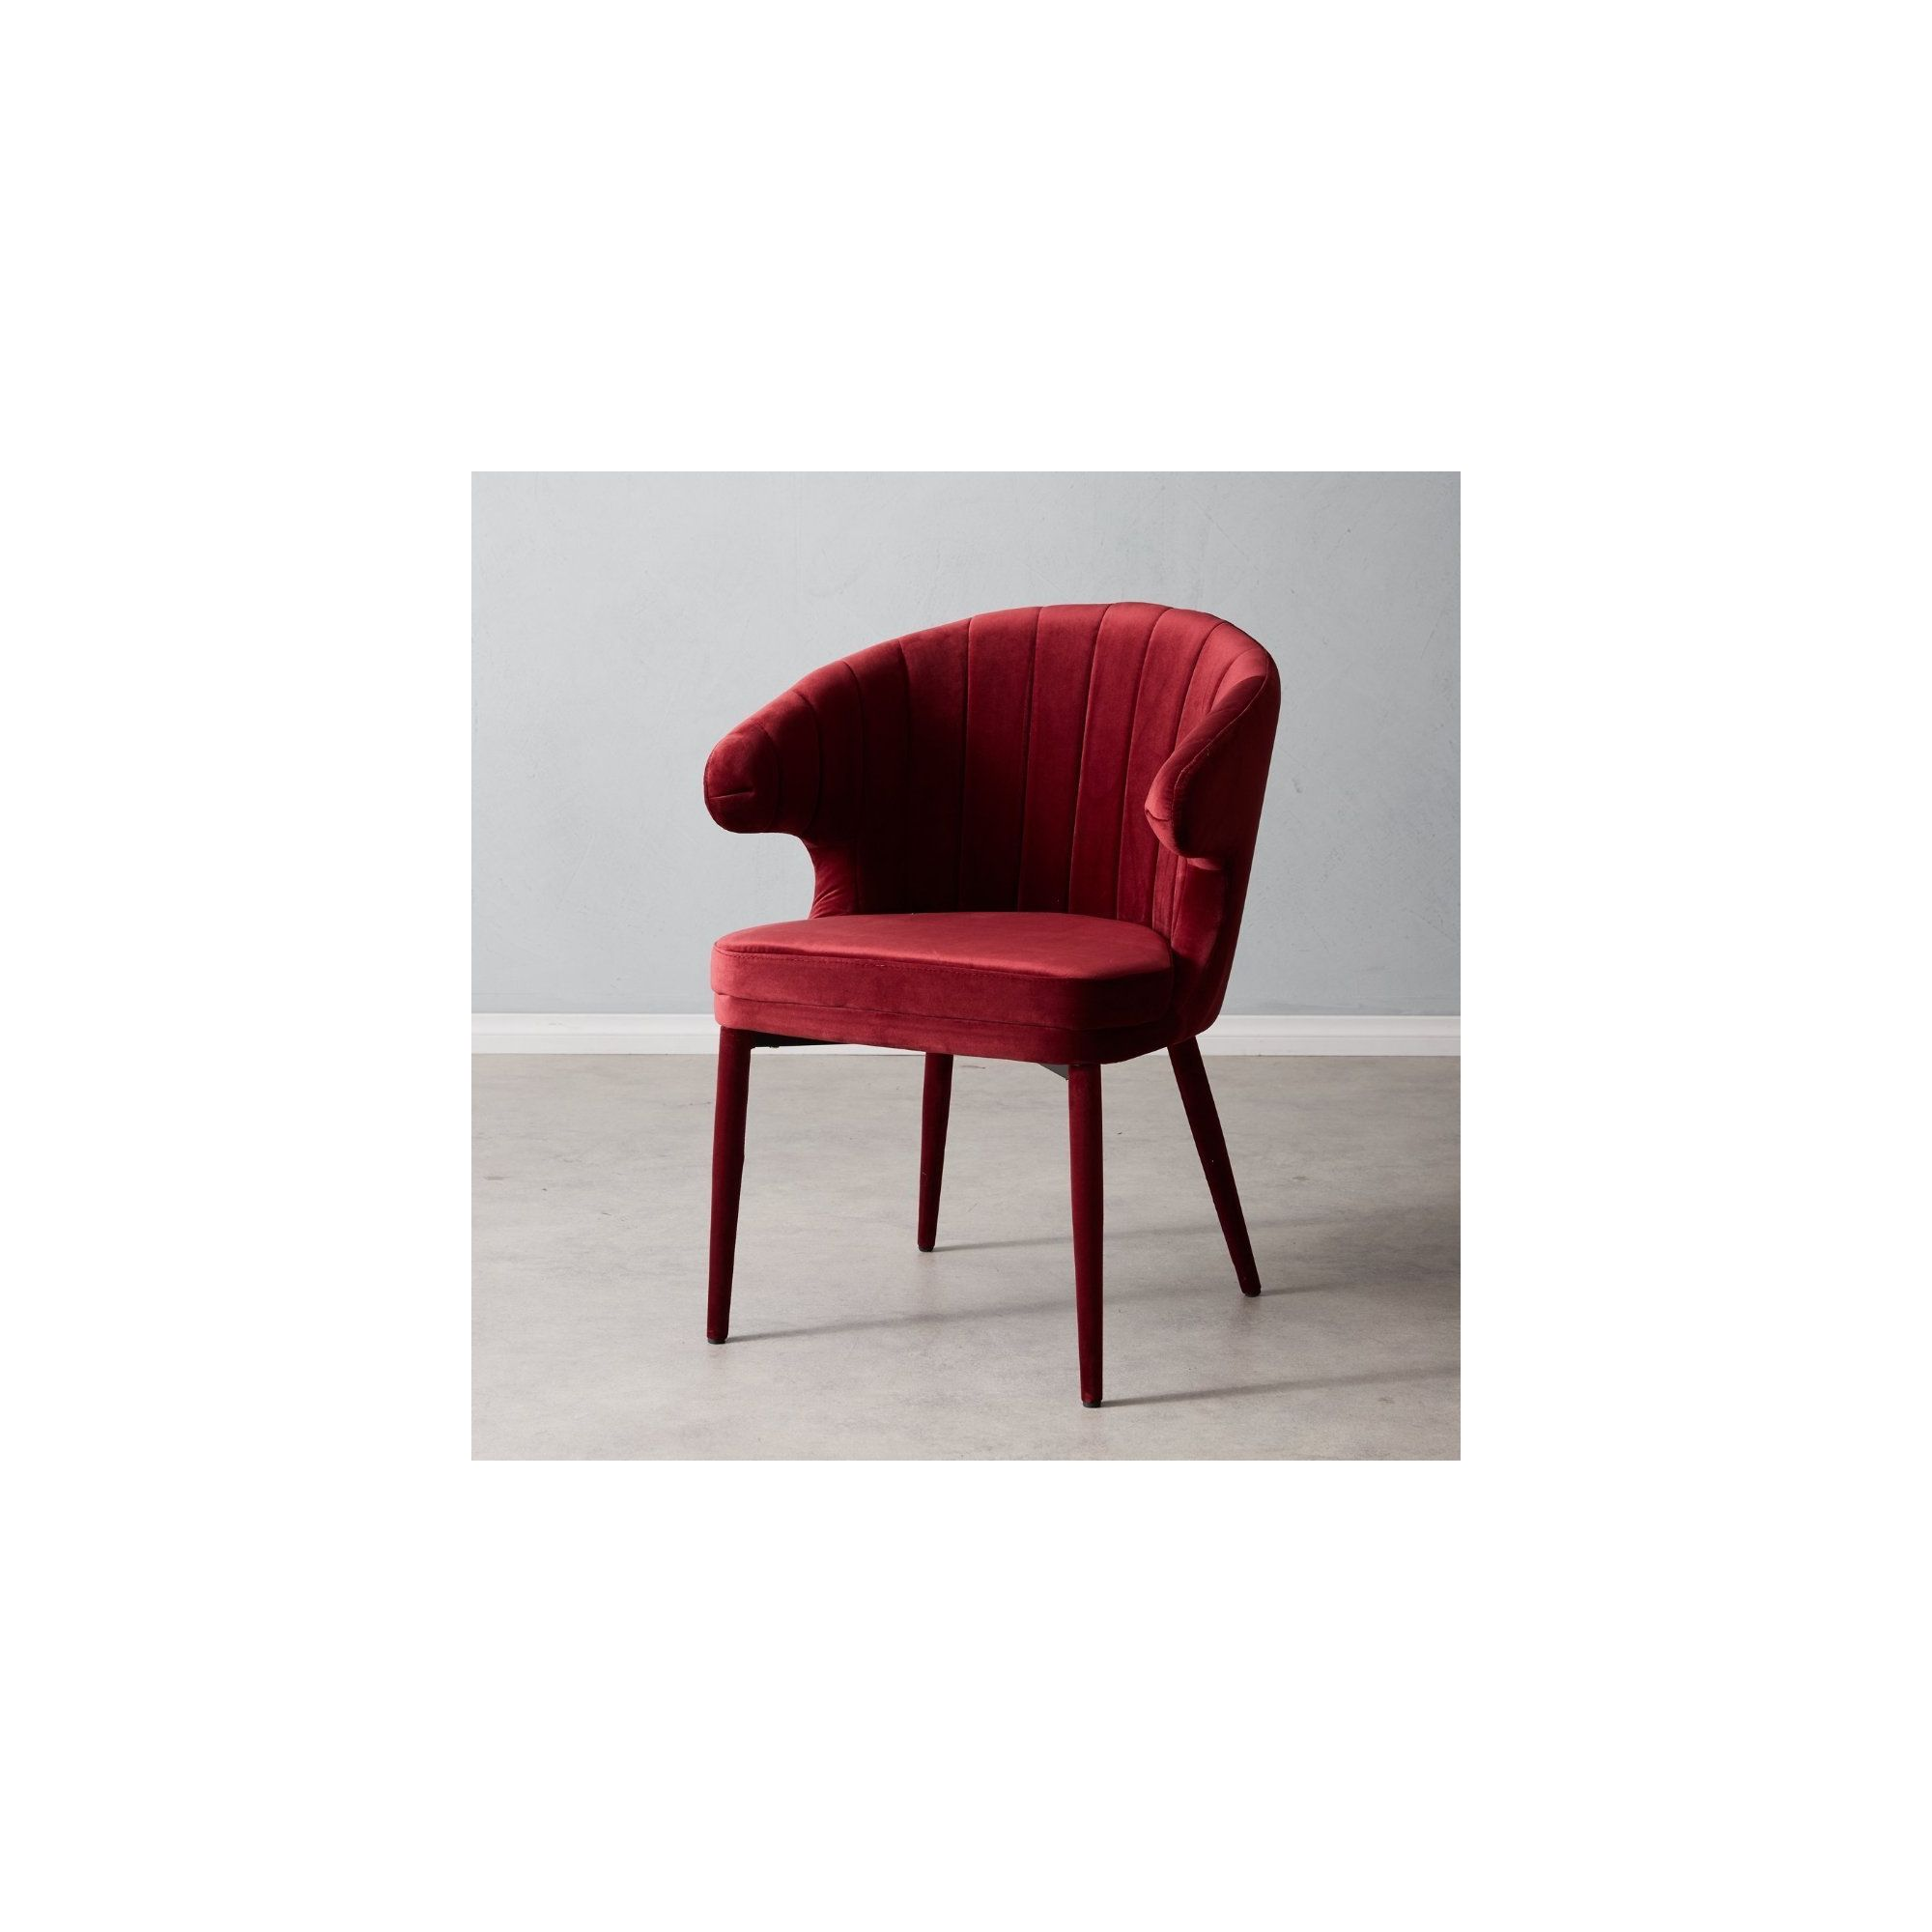 Grenache Chair by Koala Living, a Dining Chairs for sale on Style Sourcebook